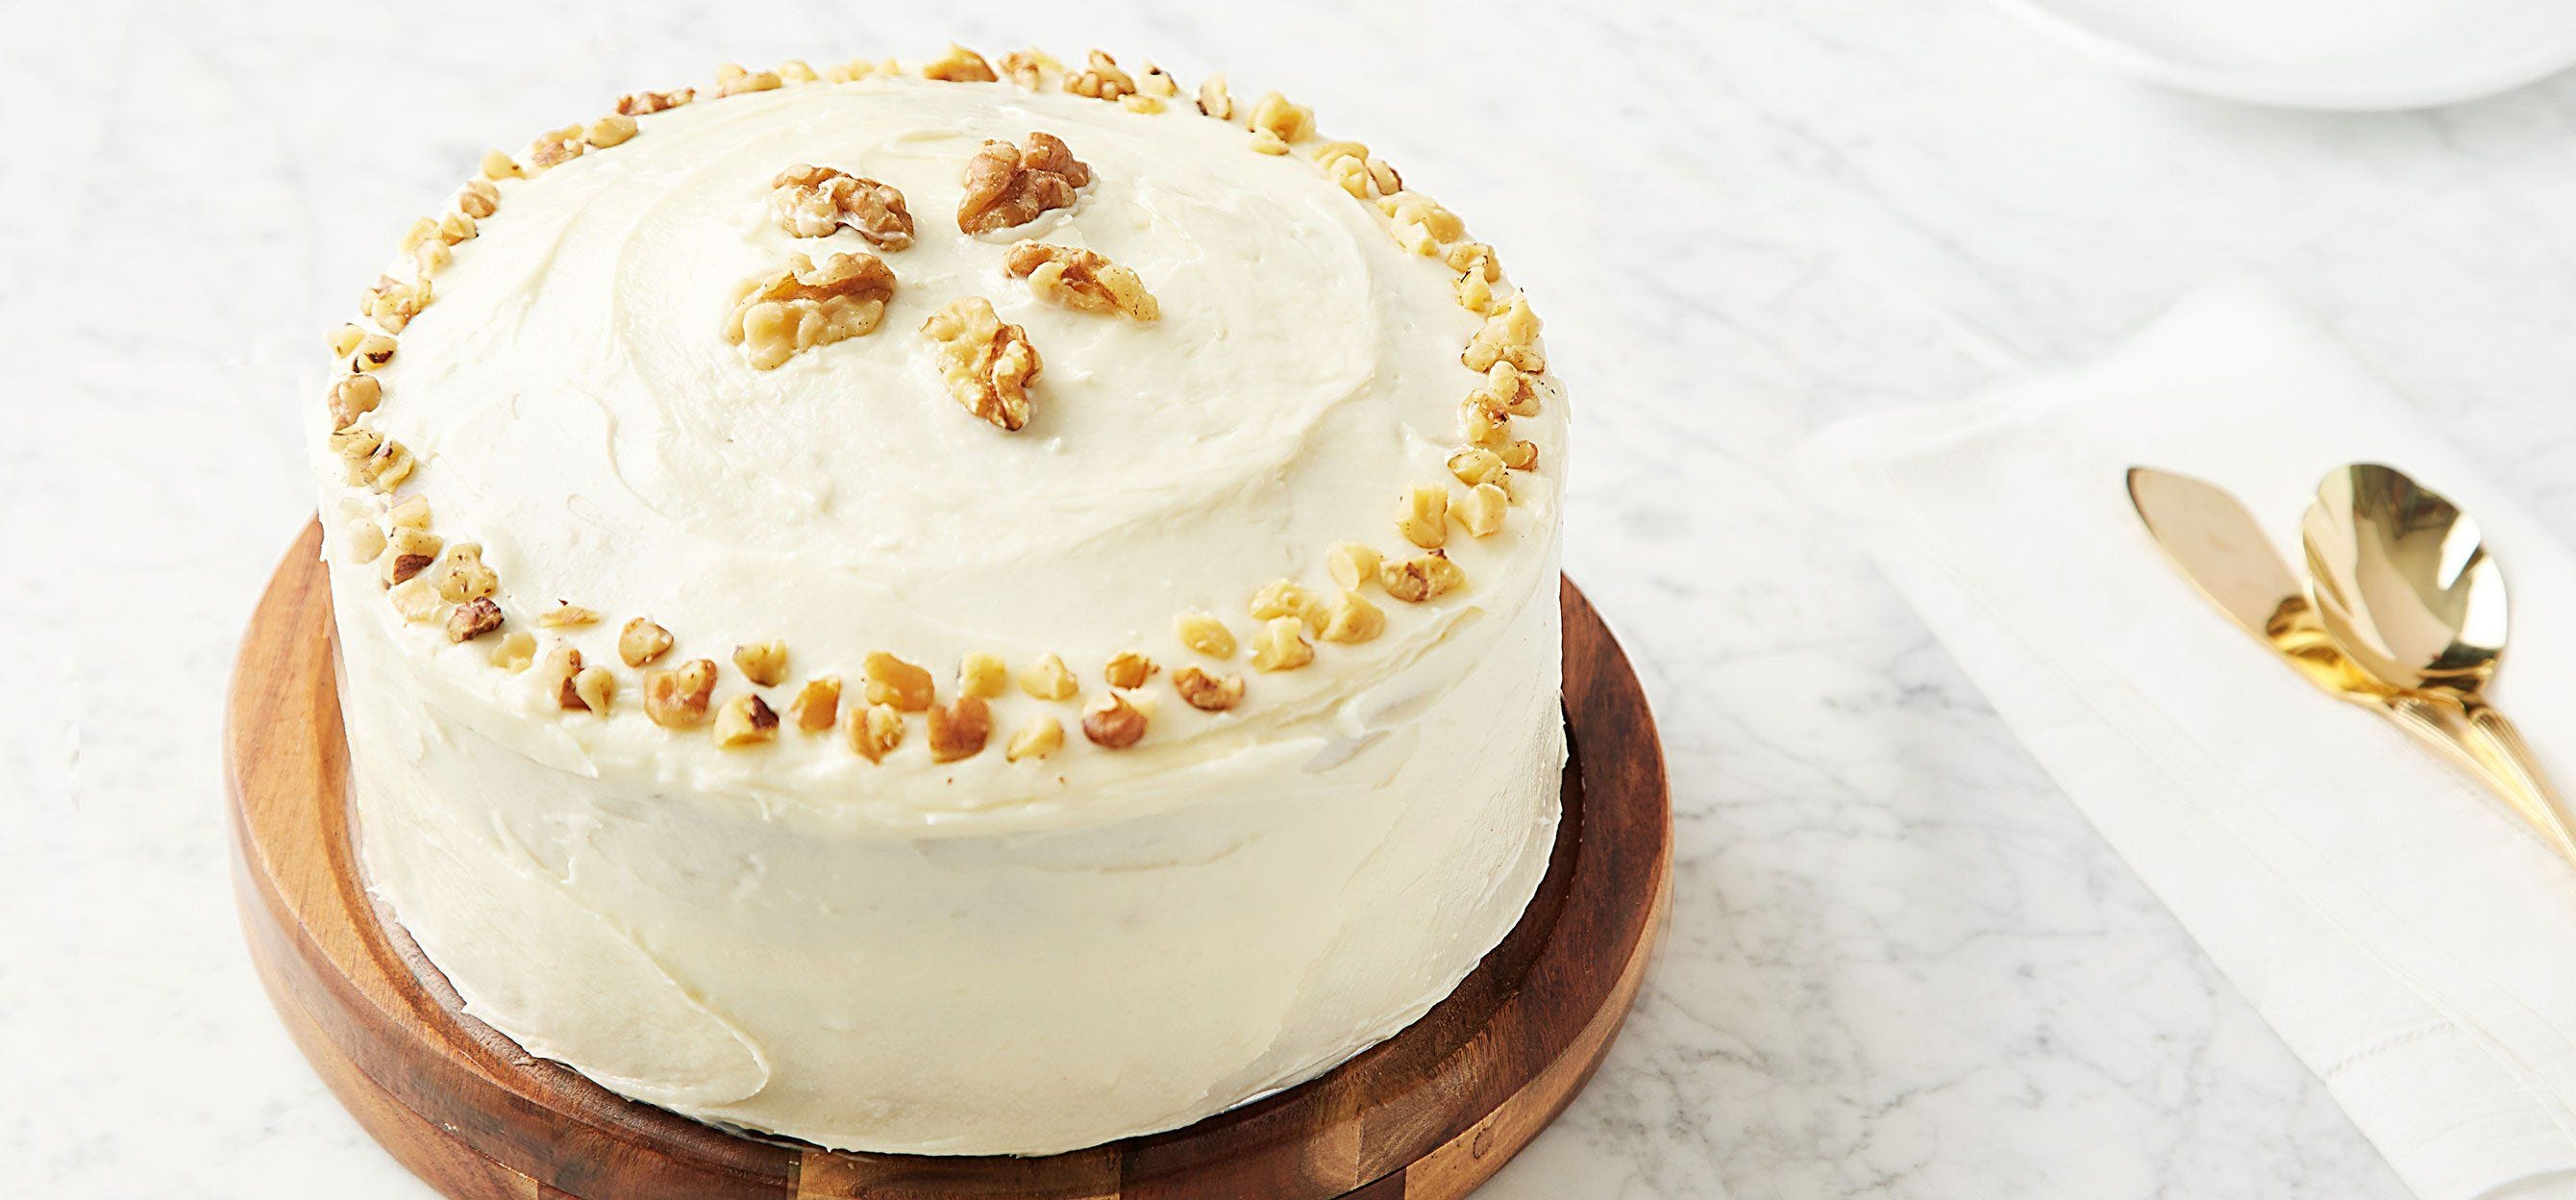 Carrot Cake with Walnuts and Cream Cheese Frosting recipe.